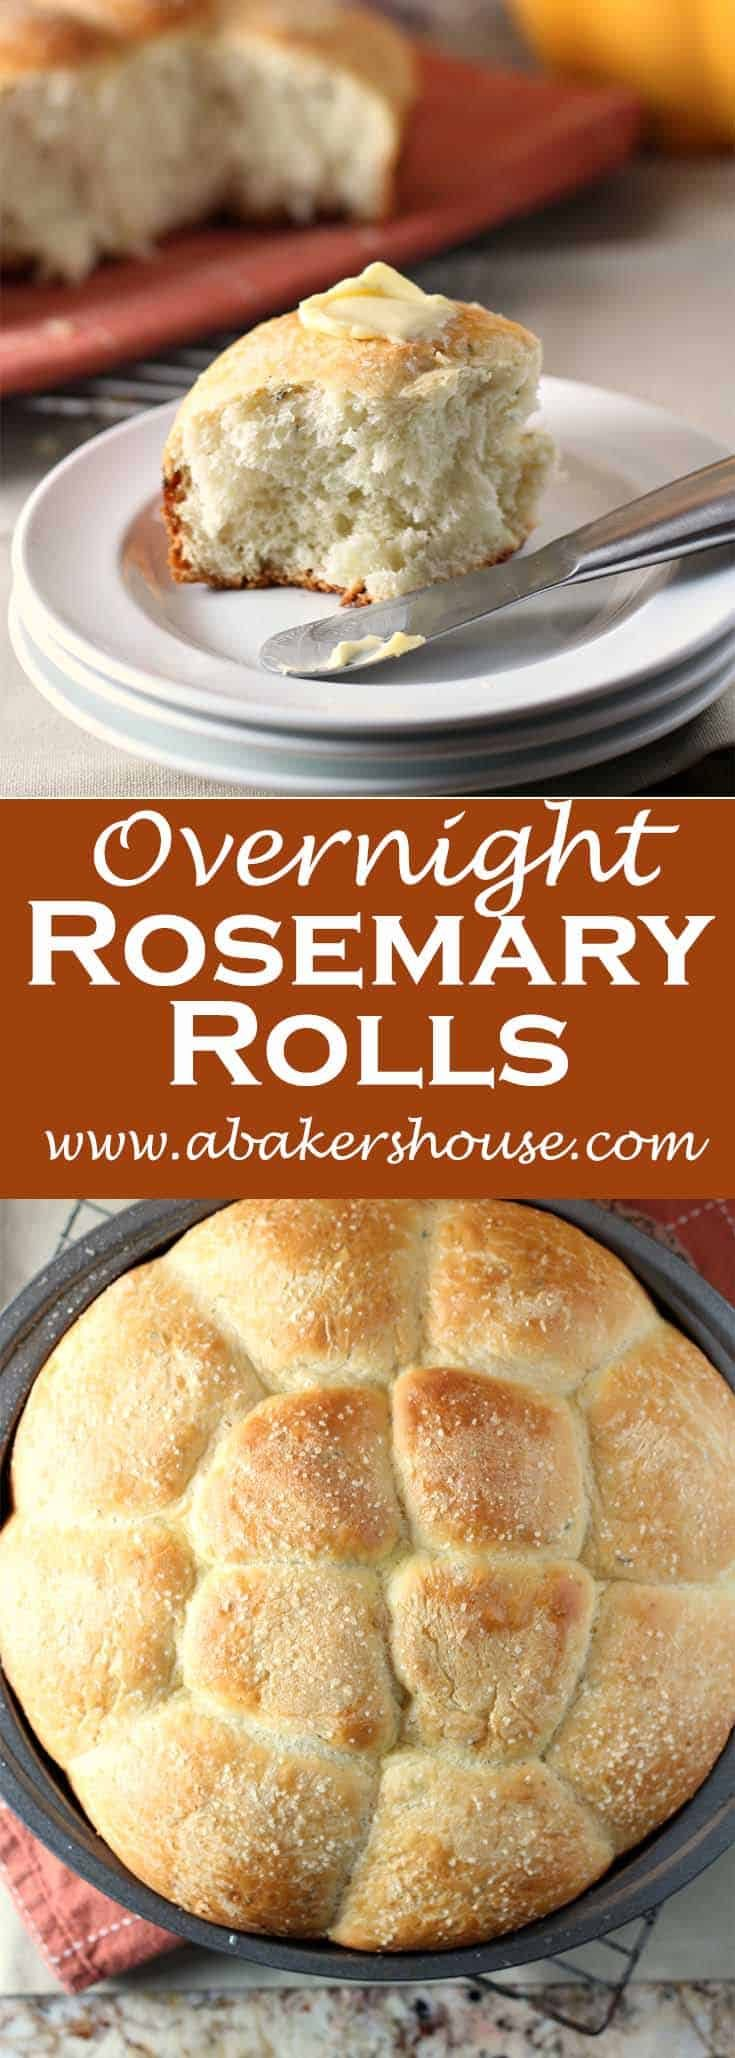 Overnight Rosemary Rolls made using a recipe from Sunset magazine. Make the dough the day ahead of time, saving you valuable time and freeing up counter space and energy for you to work on other parts of your meal during the precious few hours leading up to your dinner. Perfect for holiday meals like Thanksgiving or Christmas. #abakershouse #rosemary #rolls #buns #homemadebread